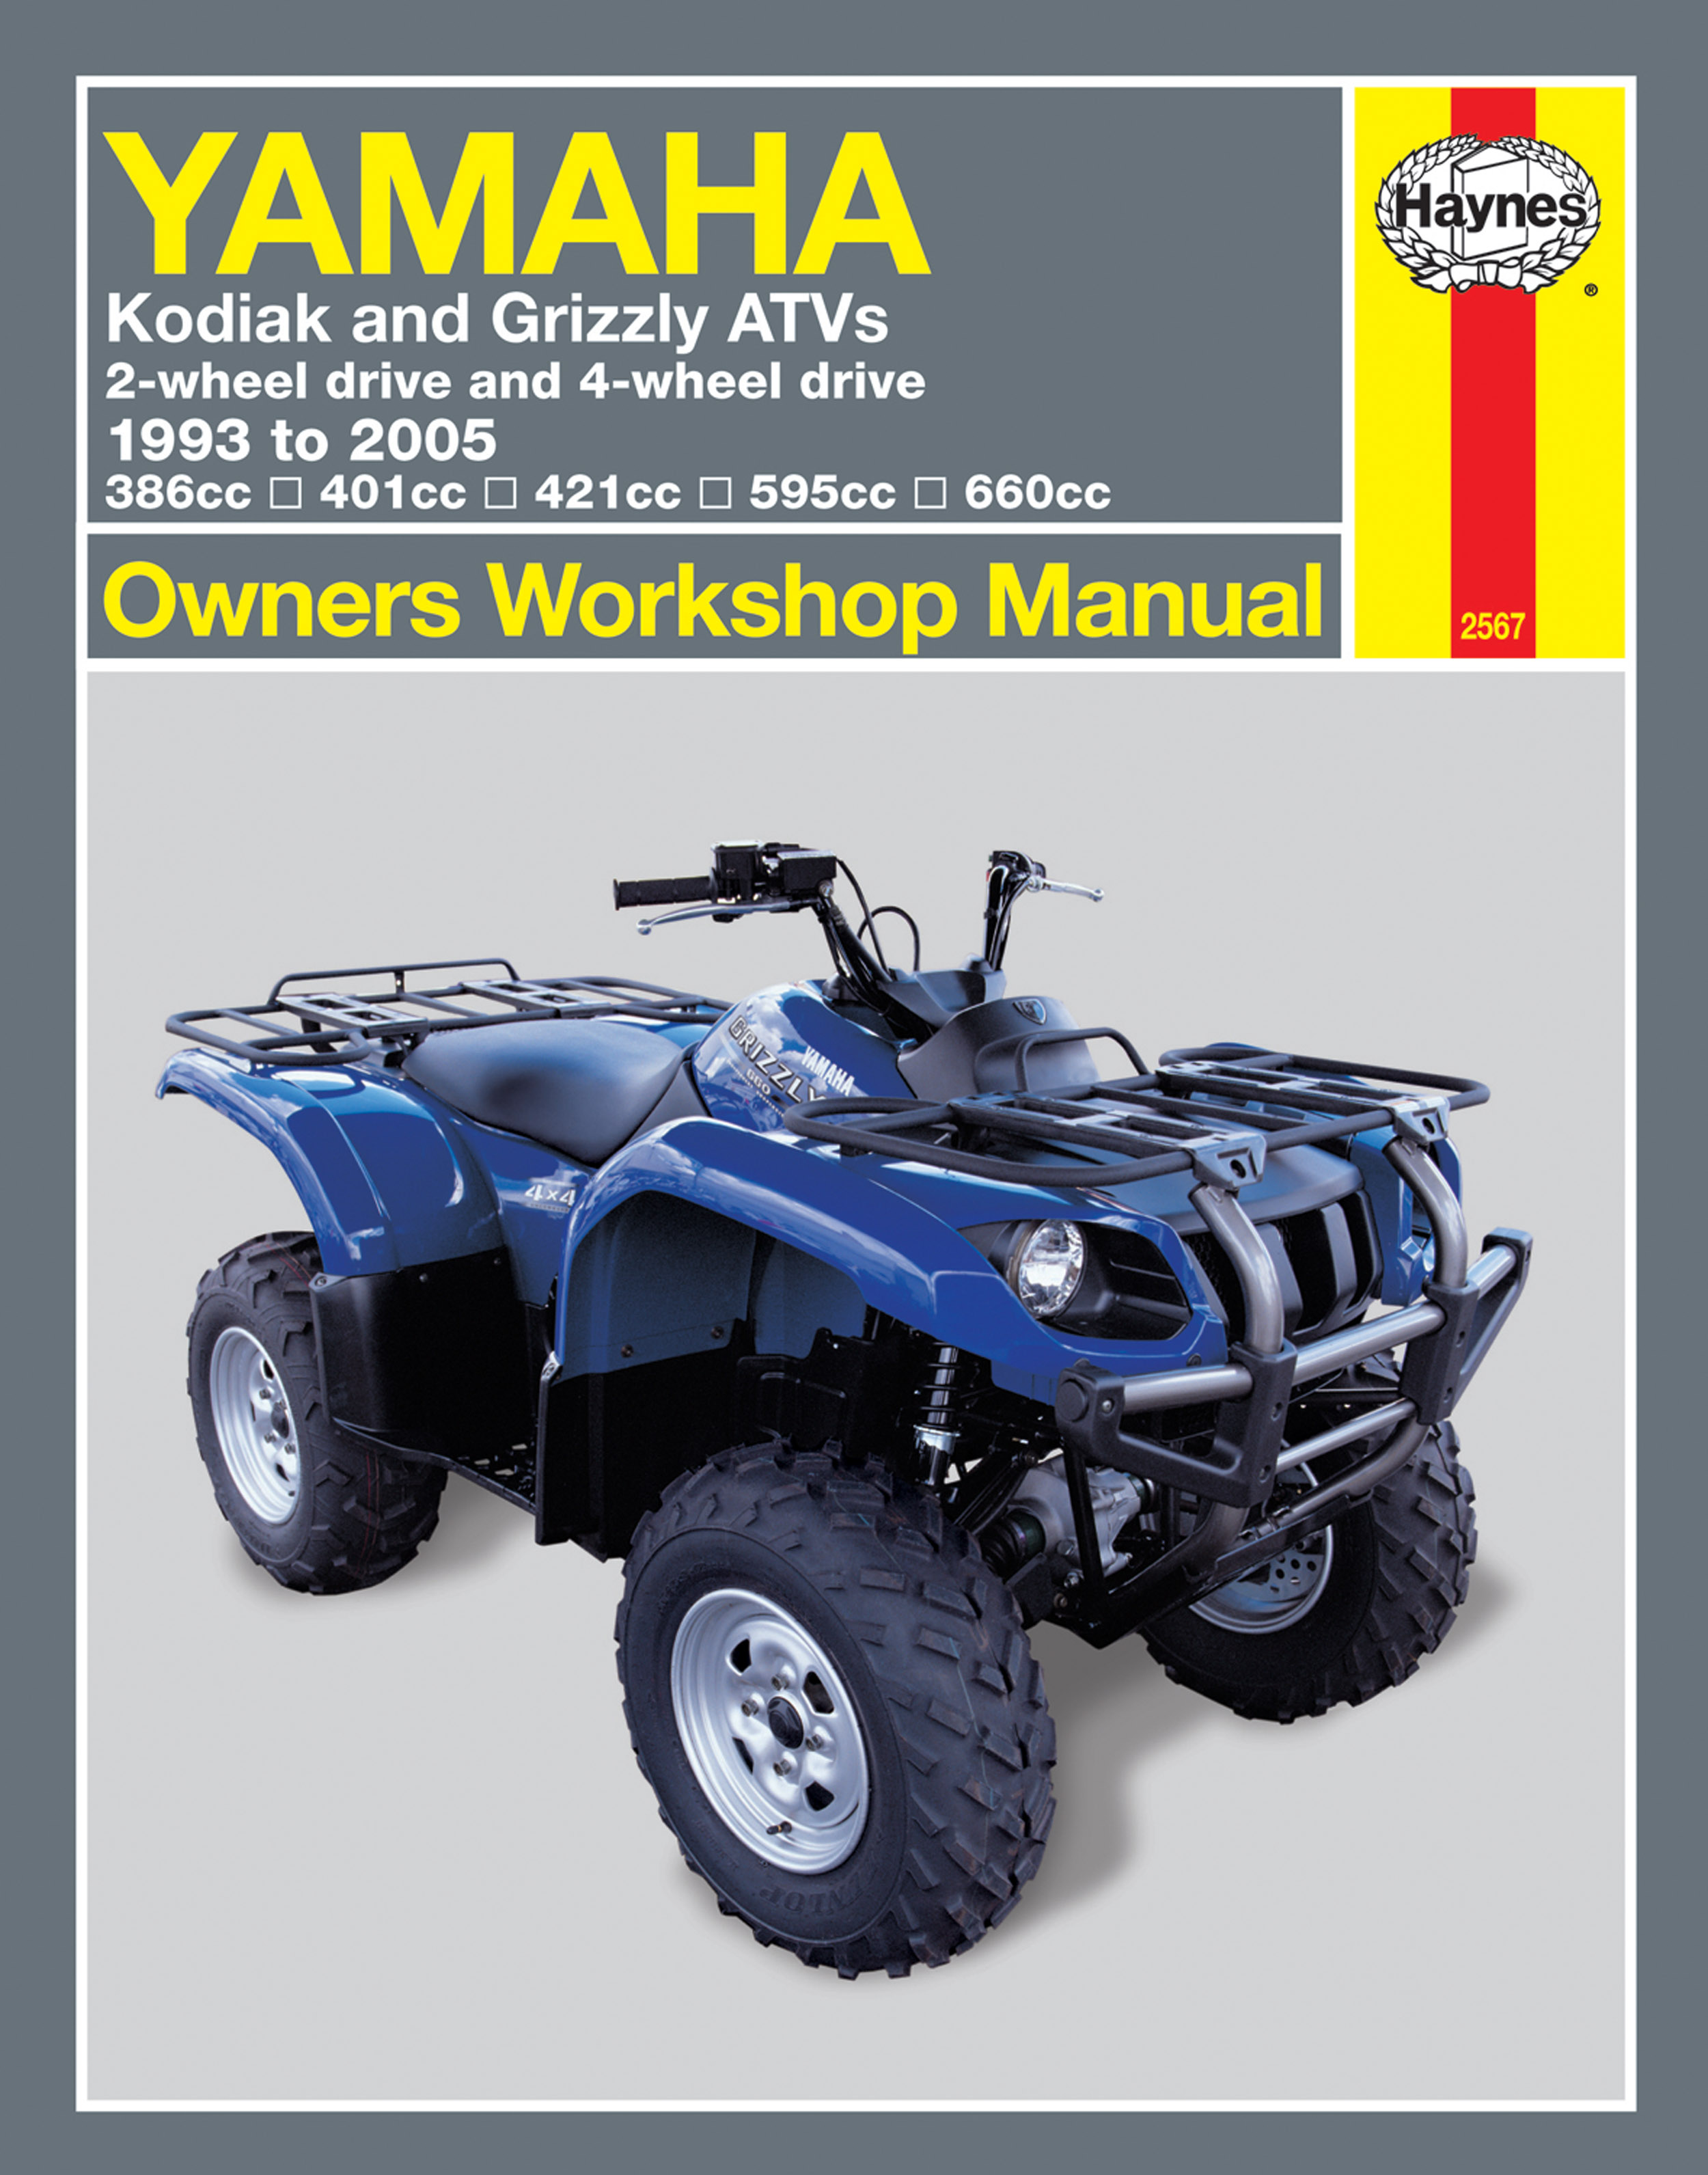 2005 Yamaha Kodiak 400 Wiring Diagram Archive Of Automotive 1996 Carburetor Schematic Haynes Manuals Rh Com